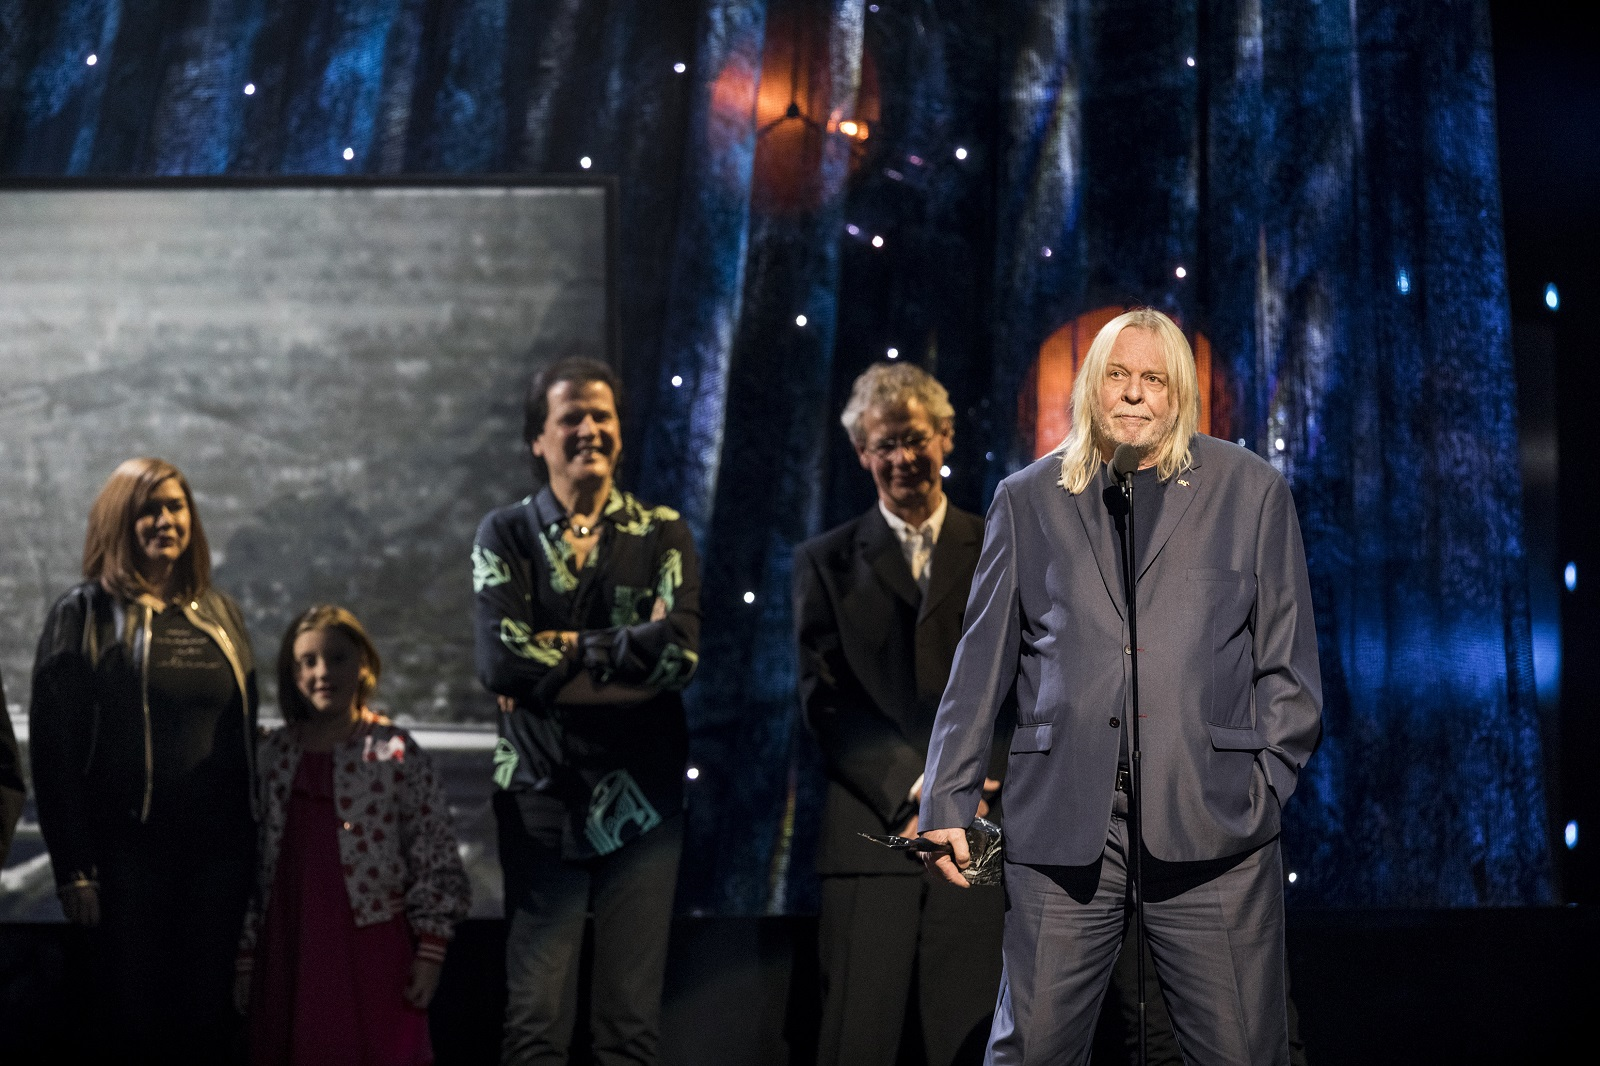 Rick Wakeman of Yes at the 32nd Annual Rock And Roll Hall of Fame Induction Ceremony at the Barclays Center in Brooklyn. (Chad Batka/The New York Times)